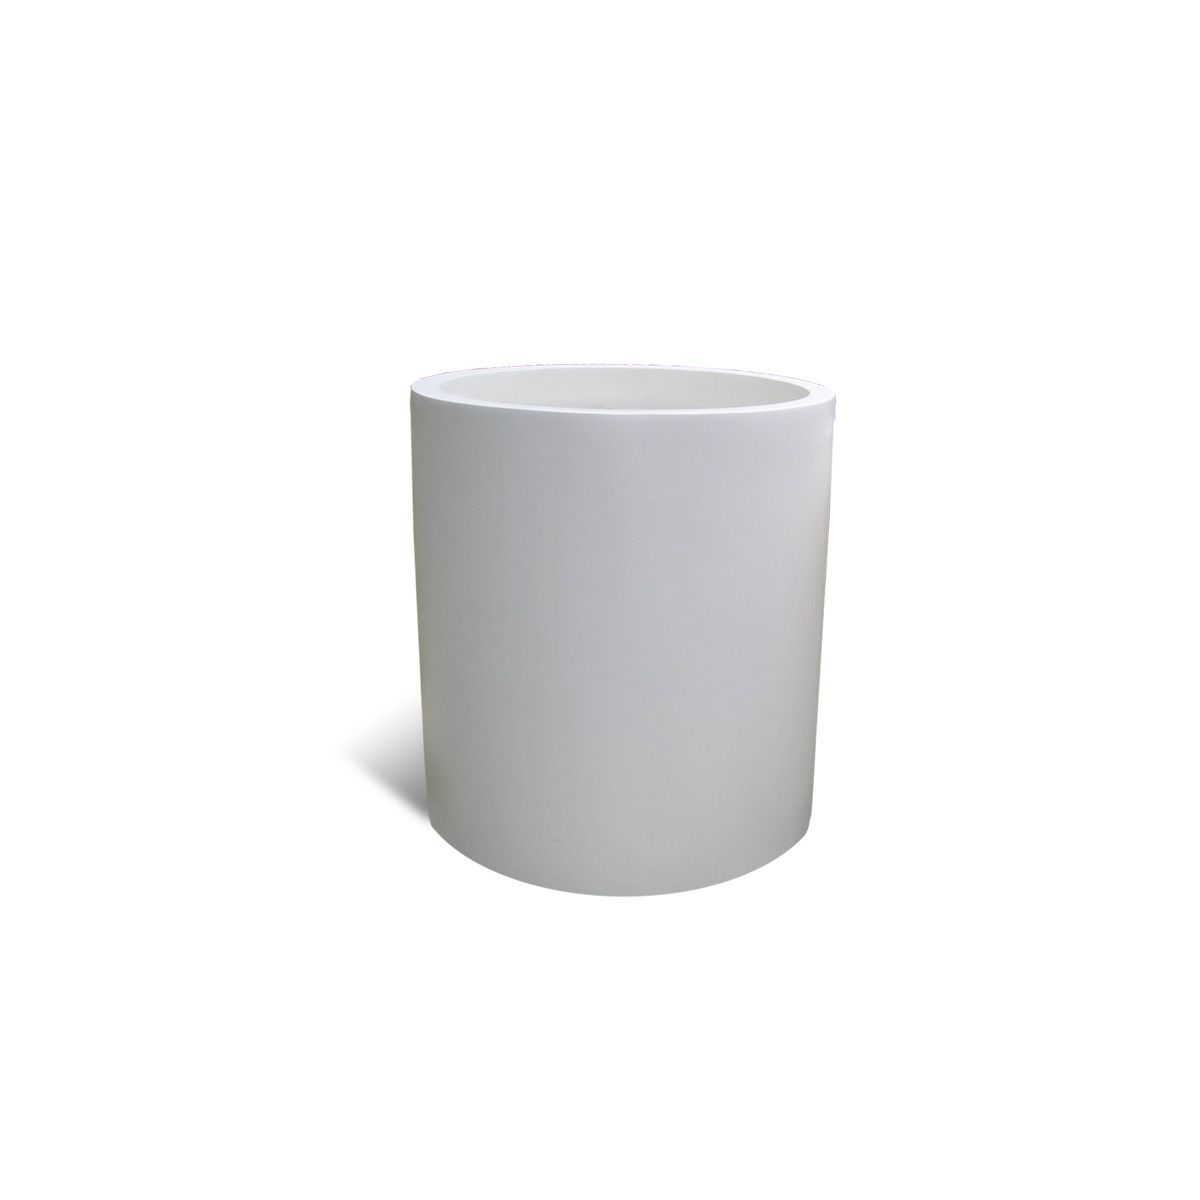 modern white fiberglass round planter 18 pots. Black Bedroom Furniture Sets. Home Design Ideas